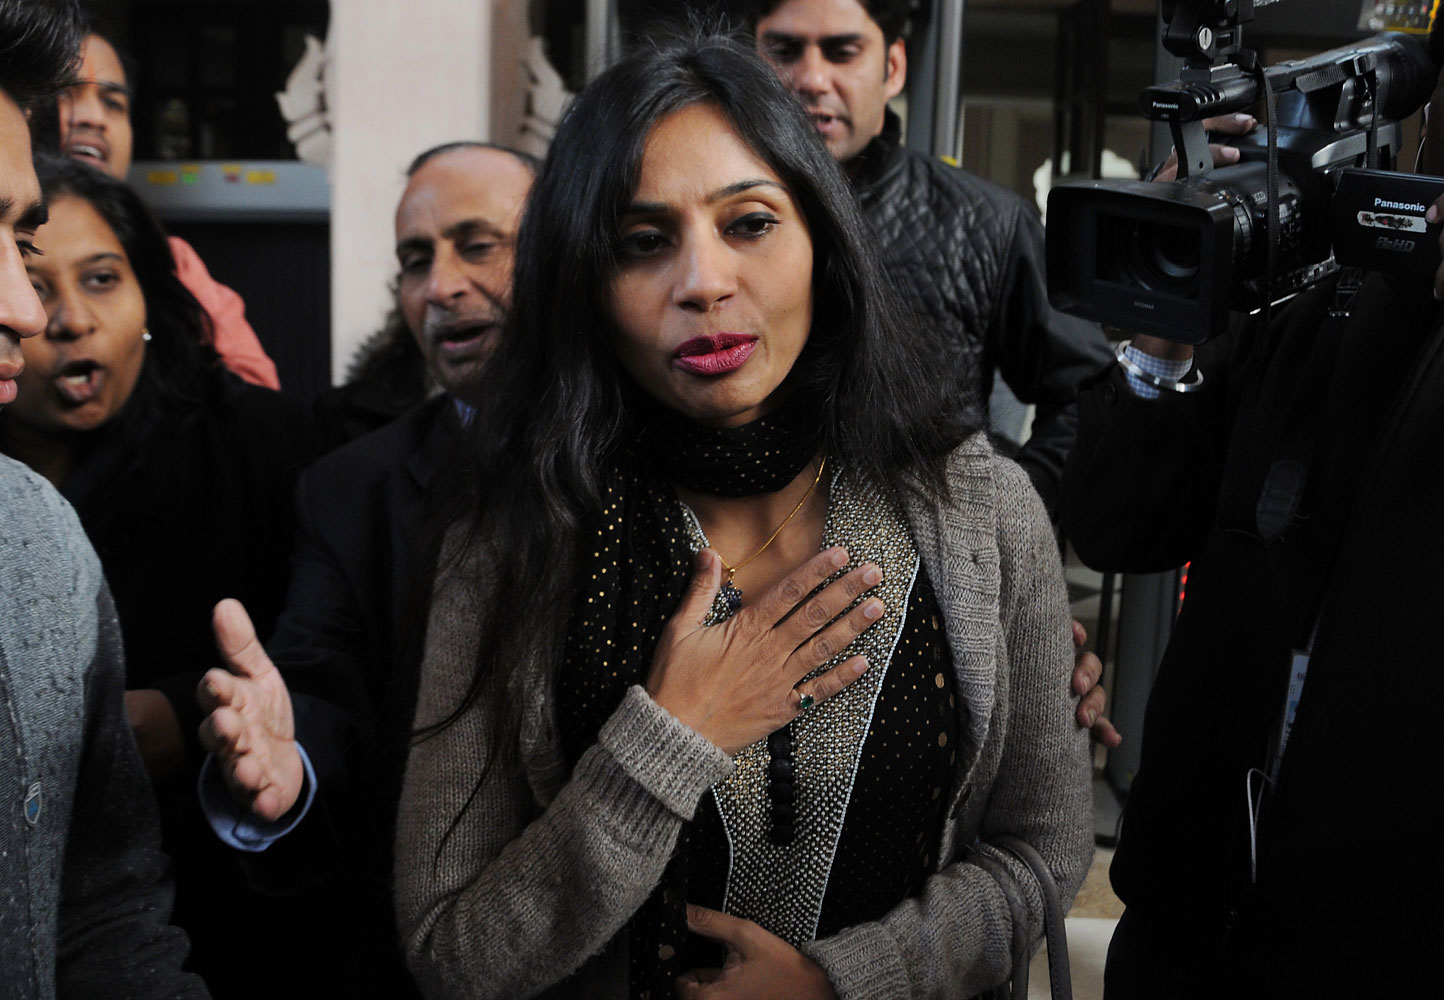 Indian diplomat Devyani Khobragade (C) leaves her guest house to meet with Indian Minister for External Affairs, Salman Khurshid in New Delhi on January 11, 2014.